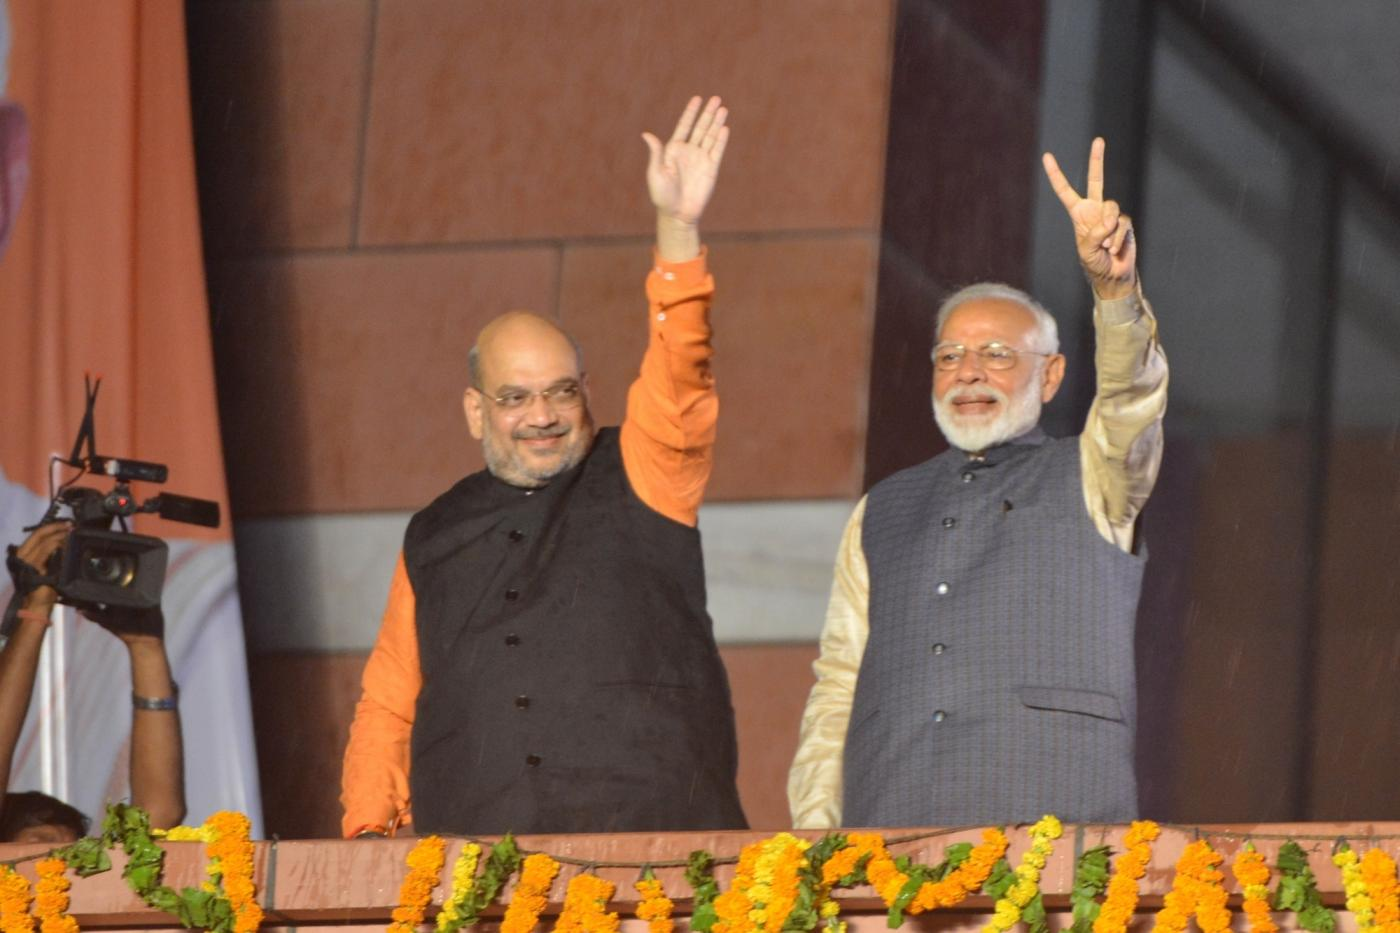 New Delhi: Prime Minister Narendra Modi and BJP chief Amit Shah wave at party workers during a party programme in New Delhi on May 23, 2019. (Photo: IANS) by .